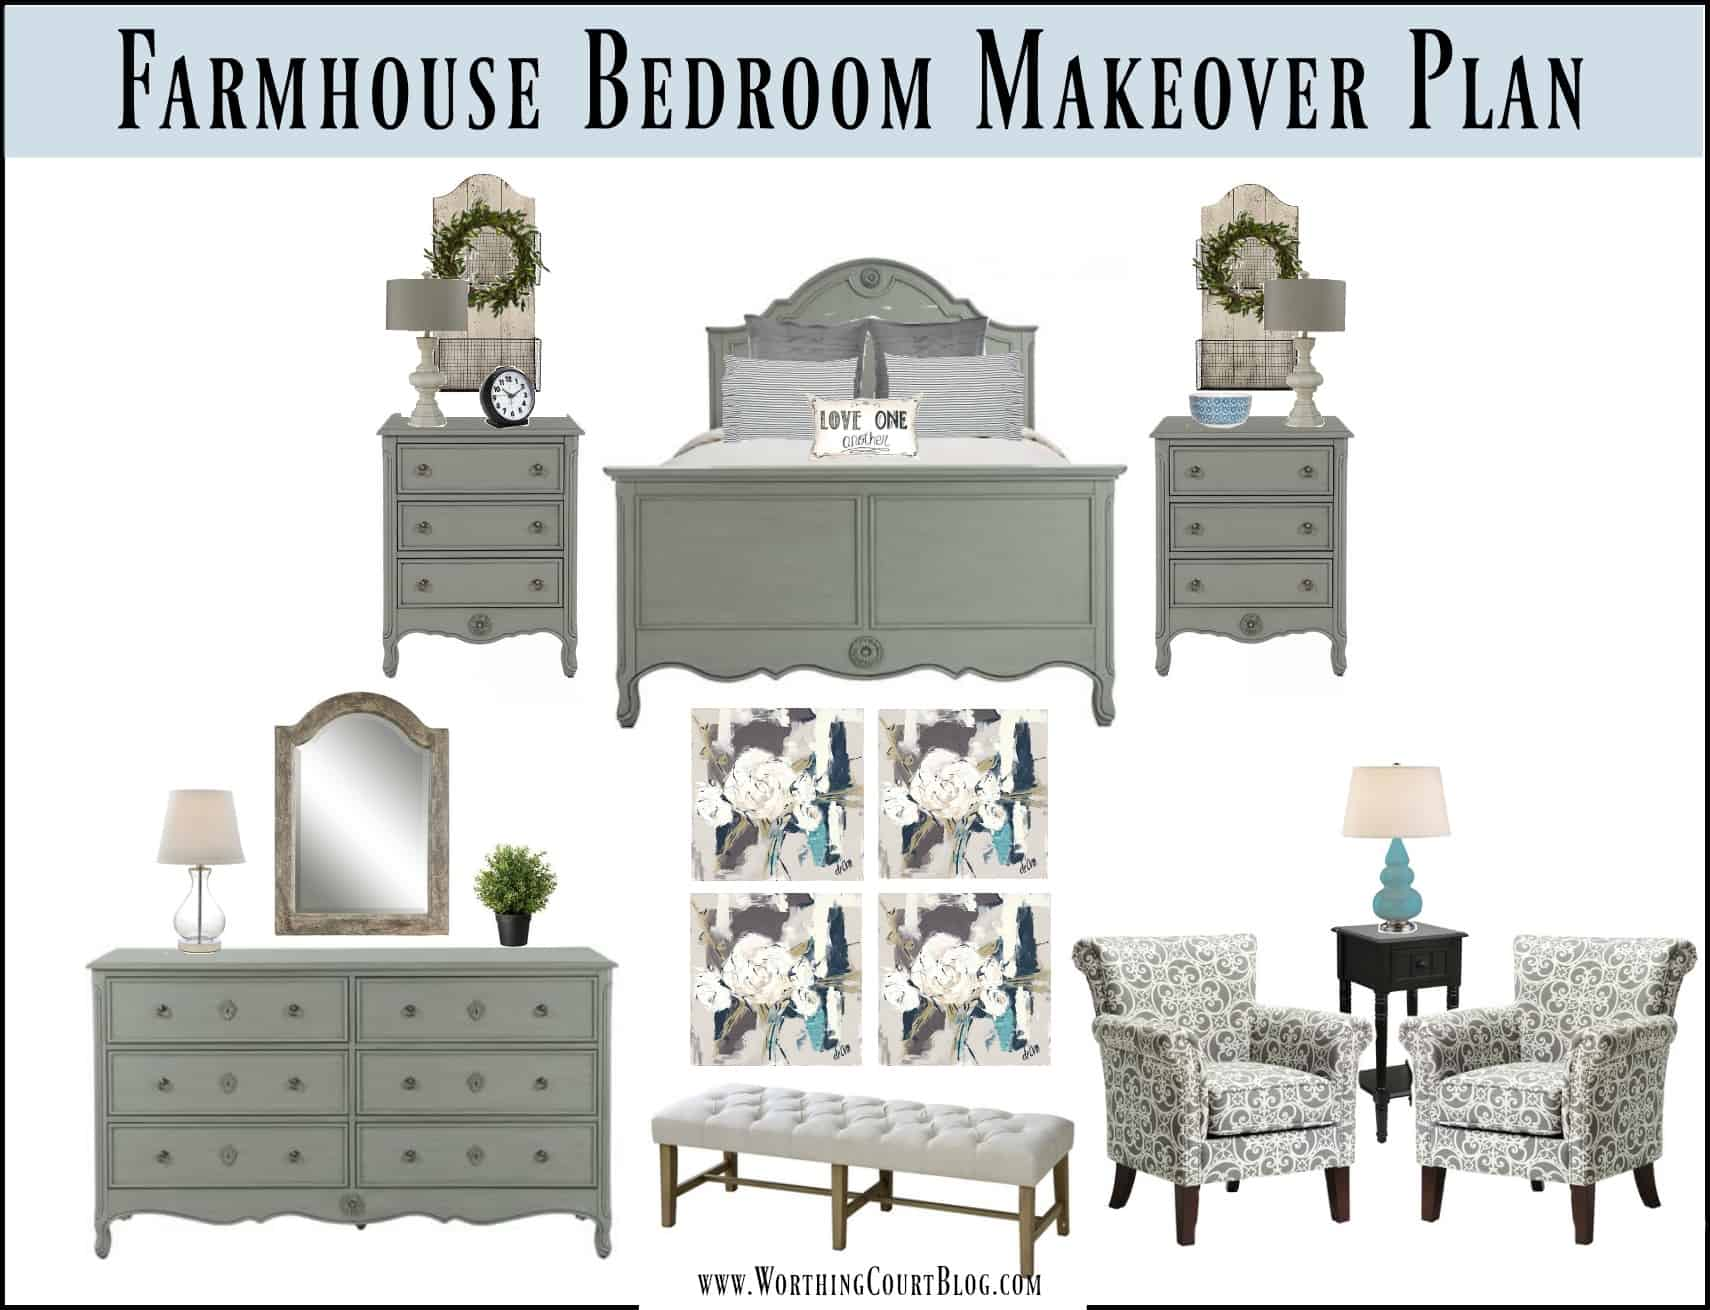 Farmhouse style bedroom makeover plans || Worthing Court